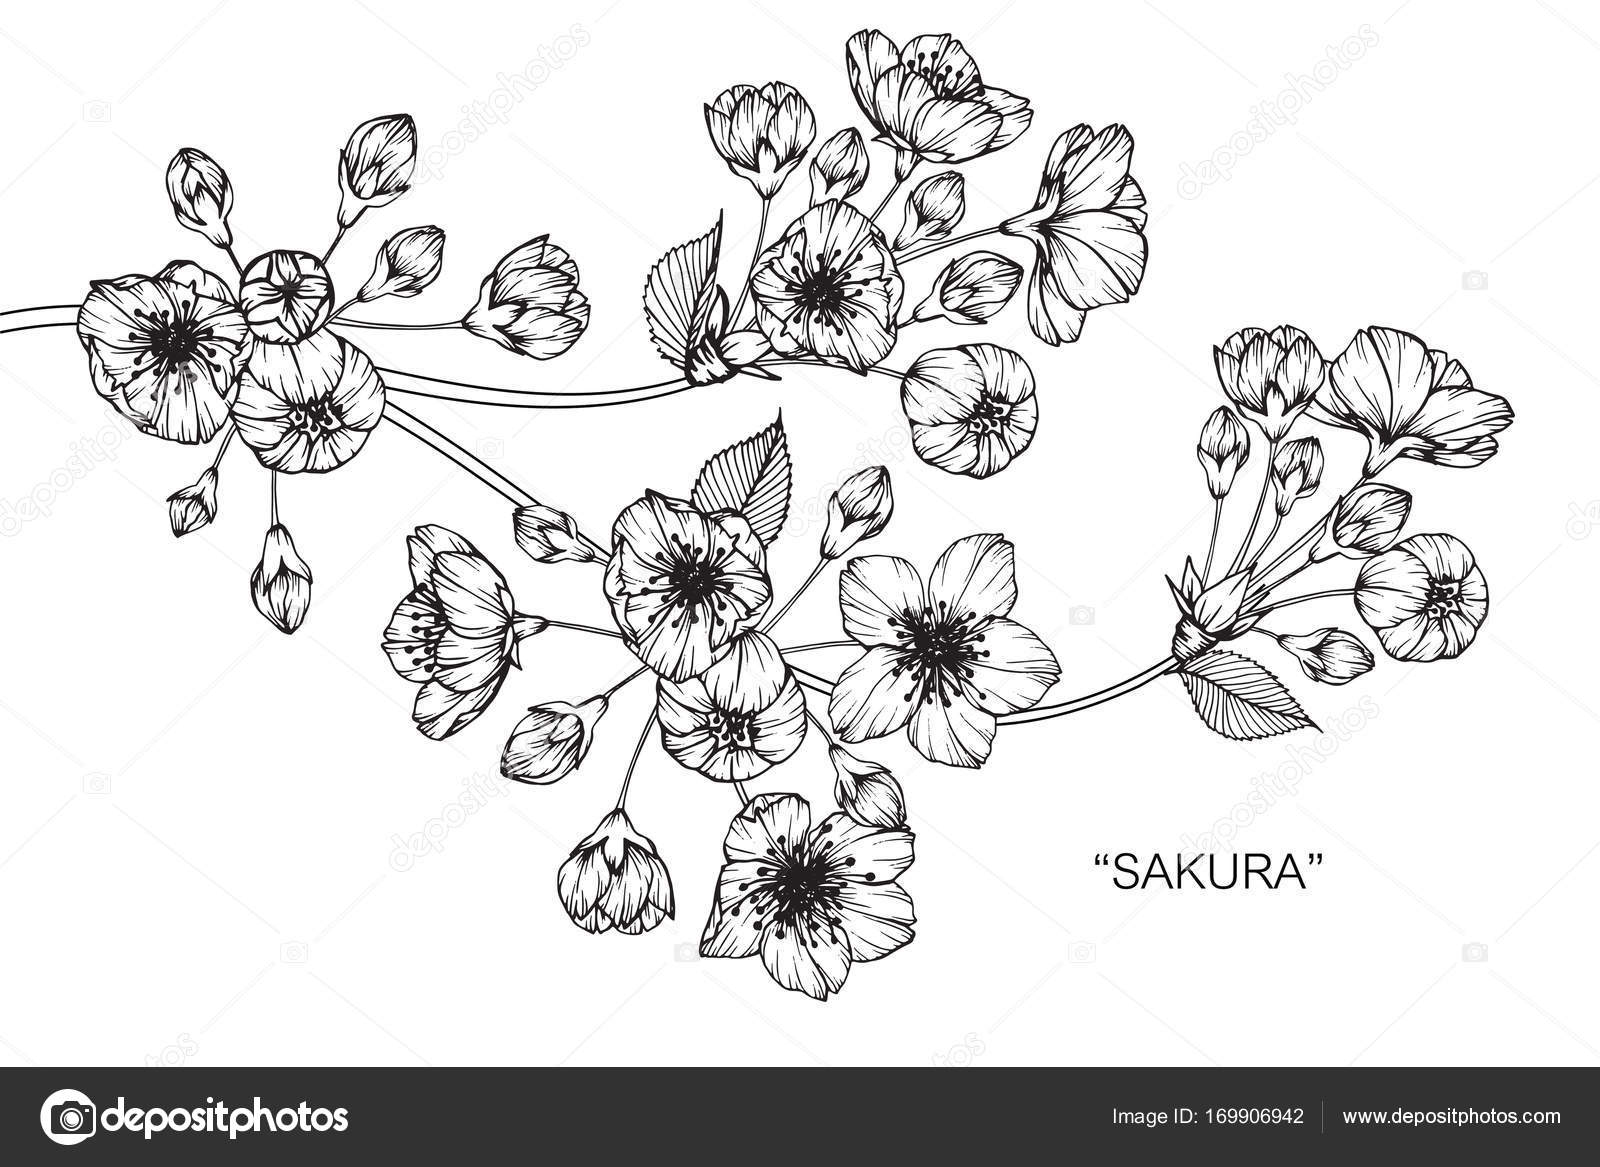 Cherry blossom flower drawing sketch black white line art stock cherry blossom flower drawing sketch black white line art stock vector mightylinksfo Image collections